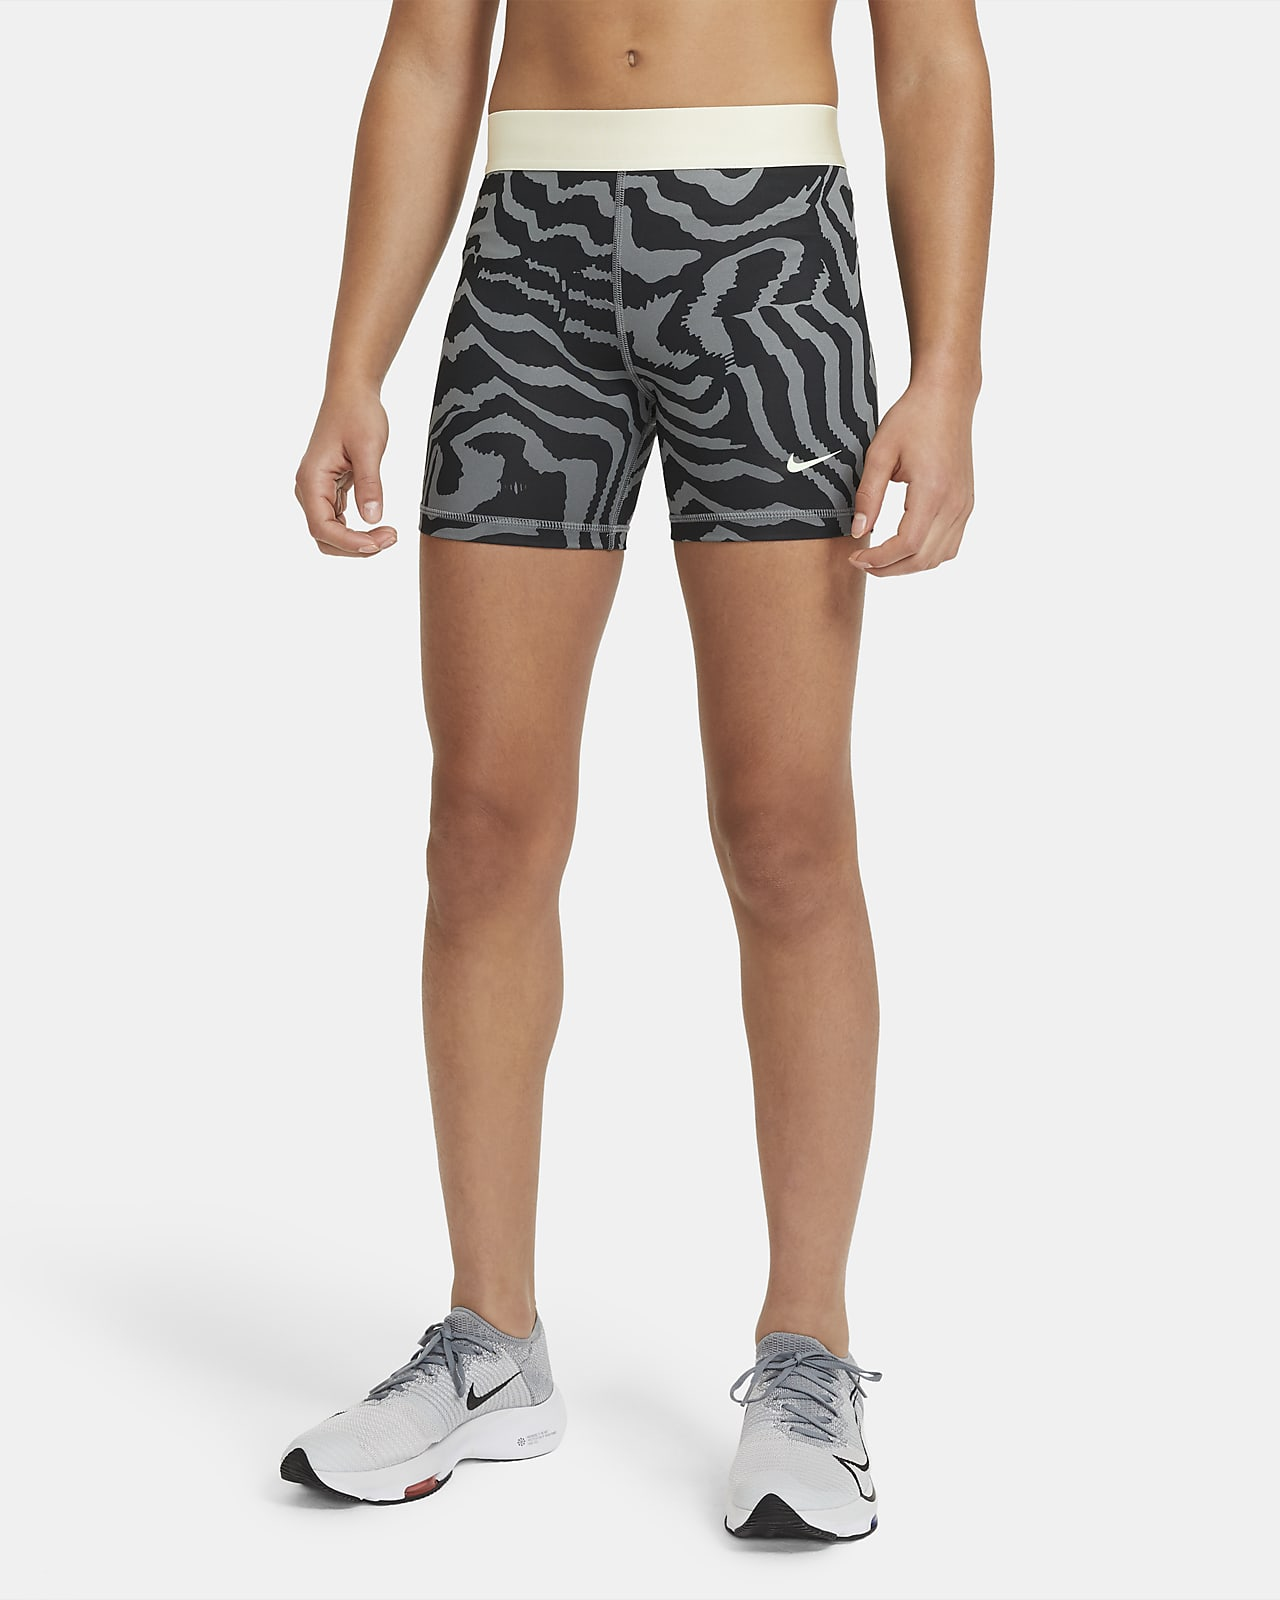 Nike Pro Older Kids' (Girls') 7cm (approx.) Printed Shorts